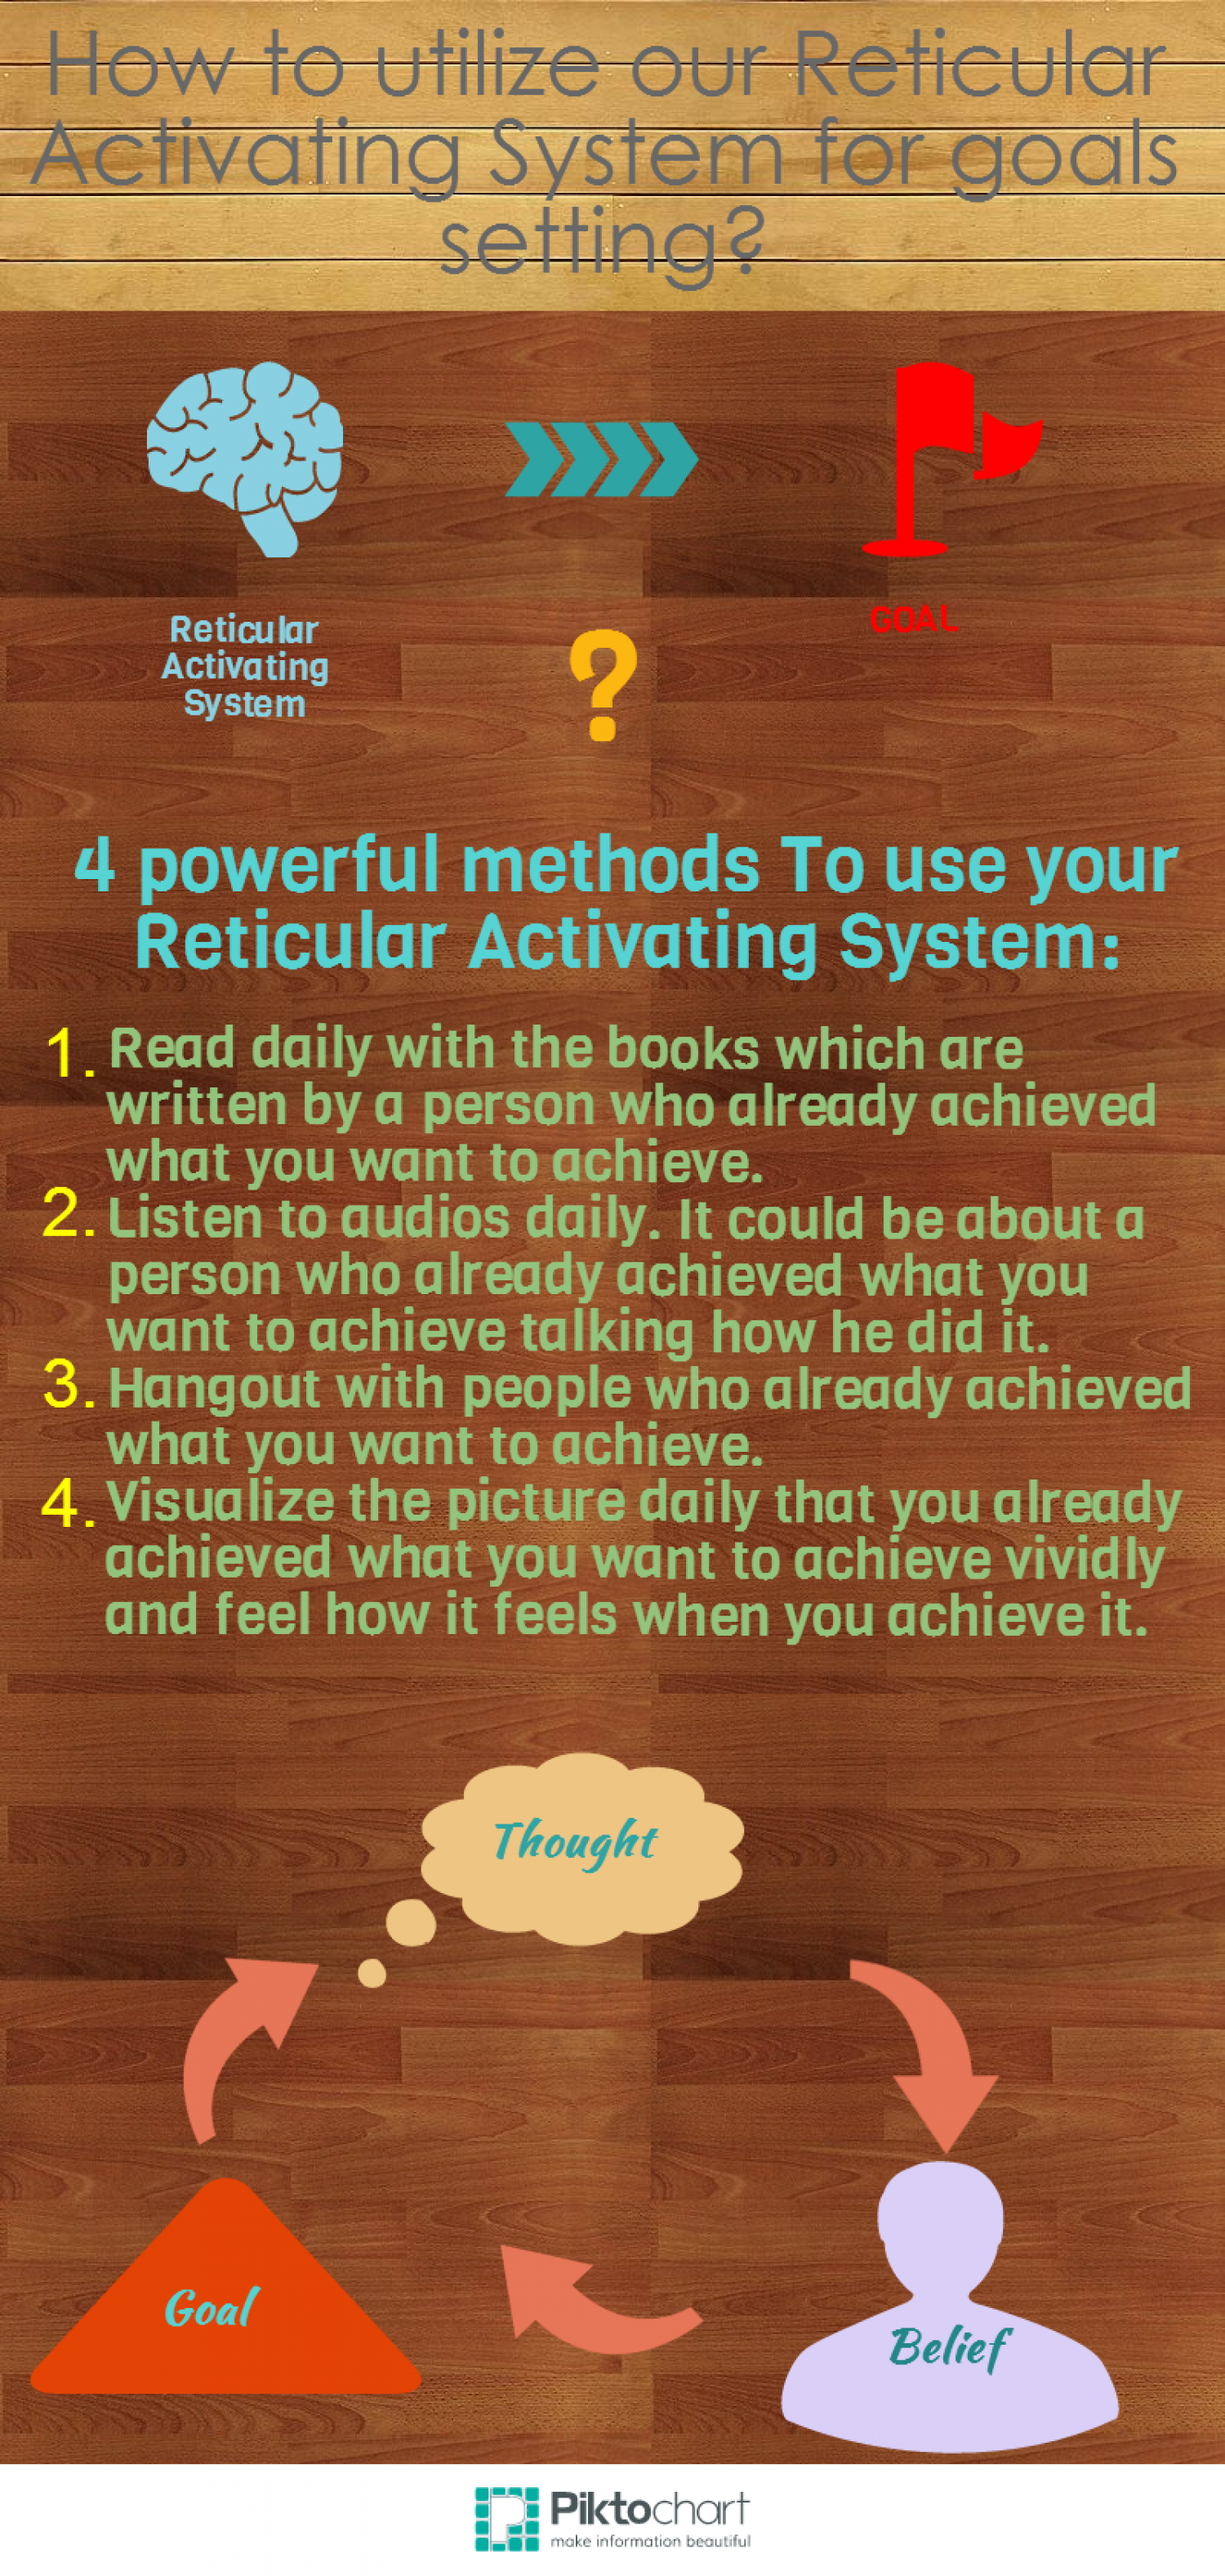 Reticular Activating System and Goals Infographic